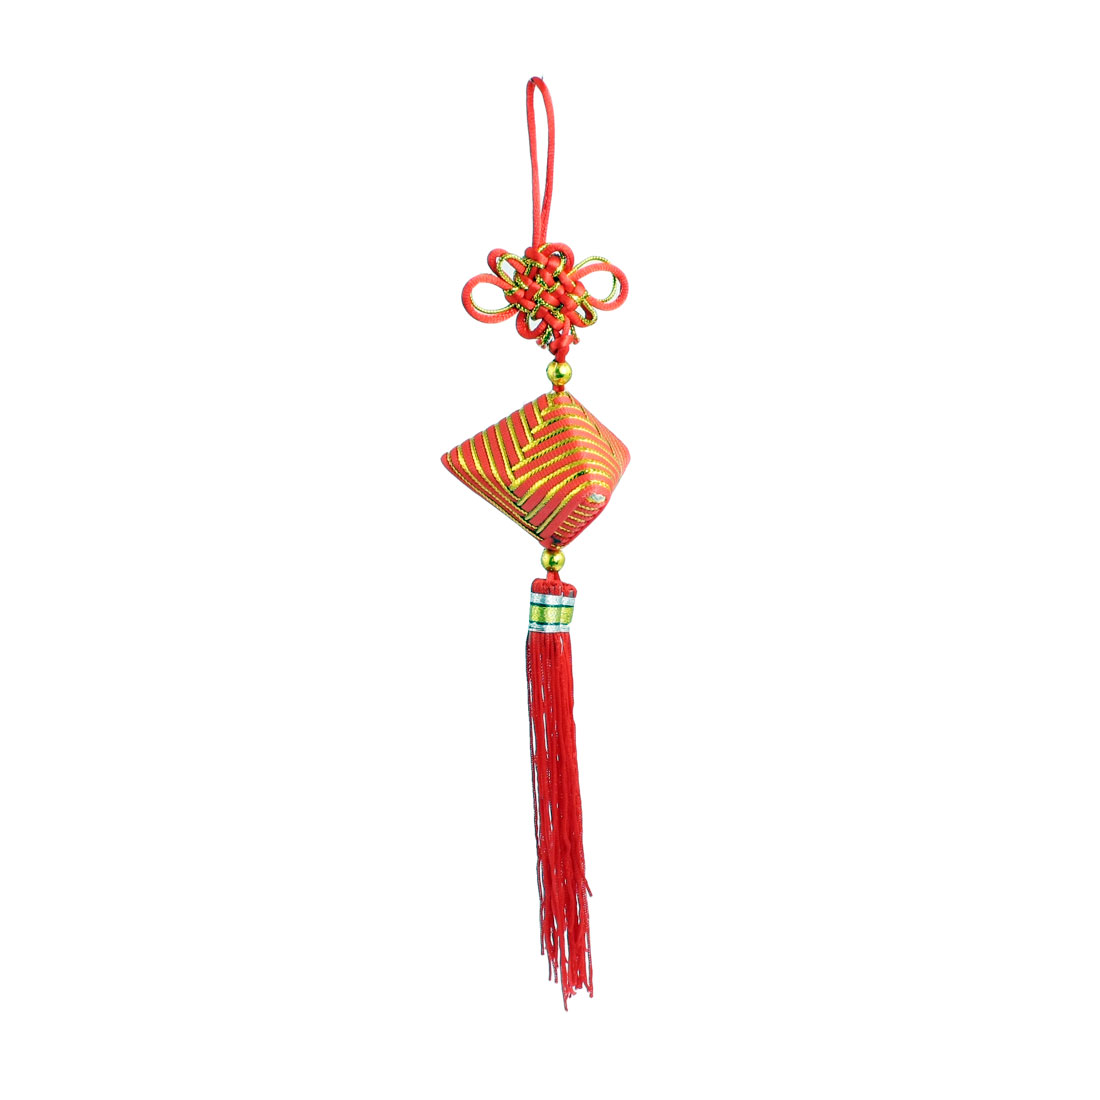 Home Auto Car Chinese Knot Hanging Decoration Ornament Gold Tone Red